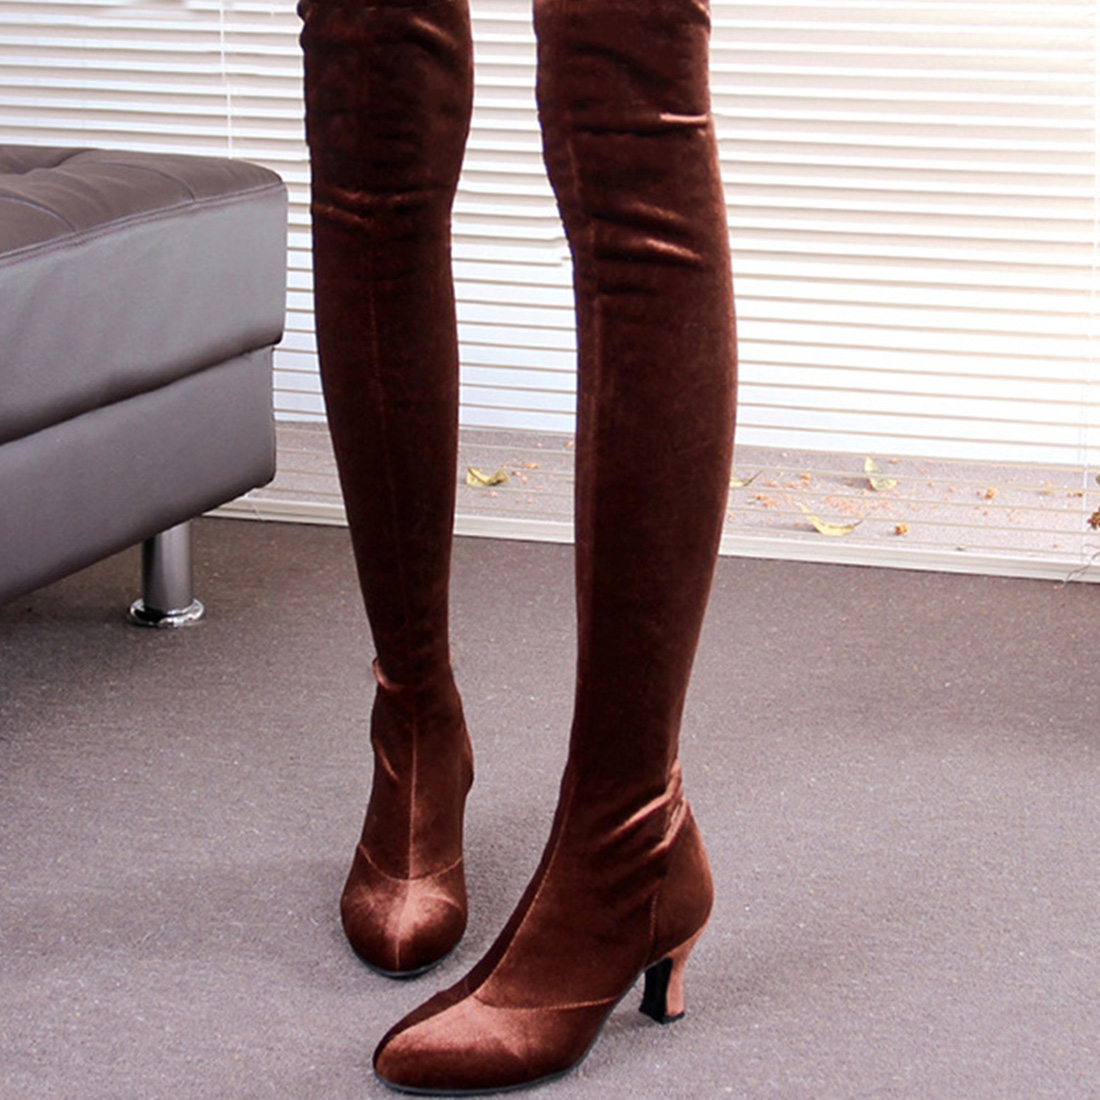 ФОТО Big Size Women High Heel Boots Over The Knee Thigh High Boots Sexy Lady Fashion Winter Shoes strech Knight Boots